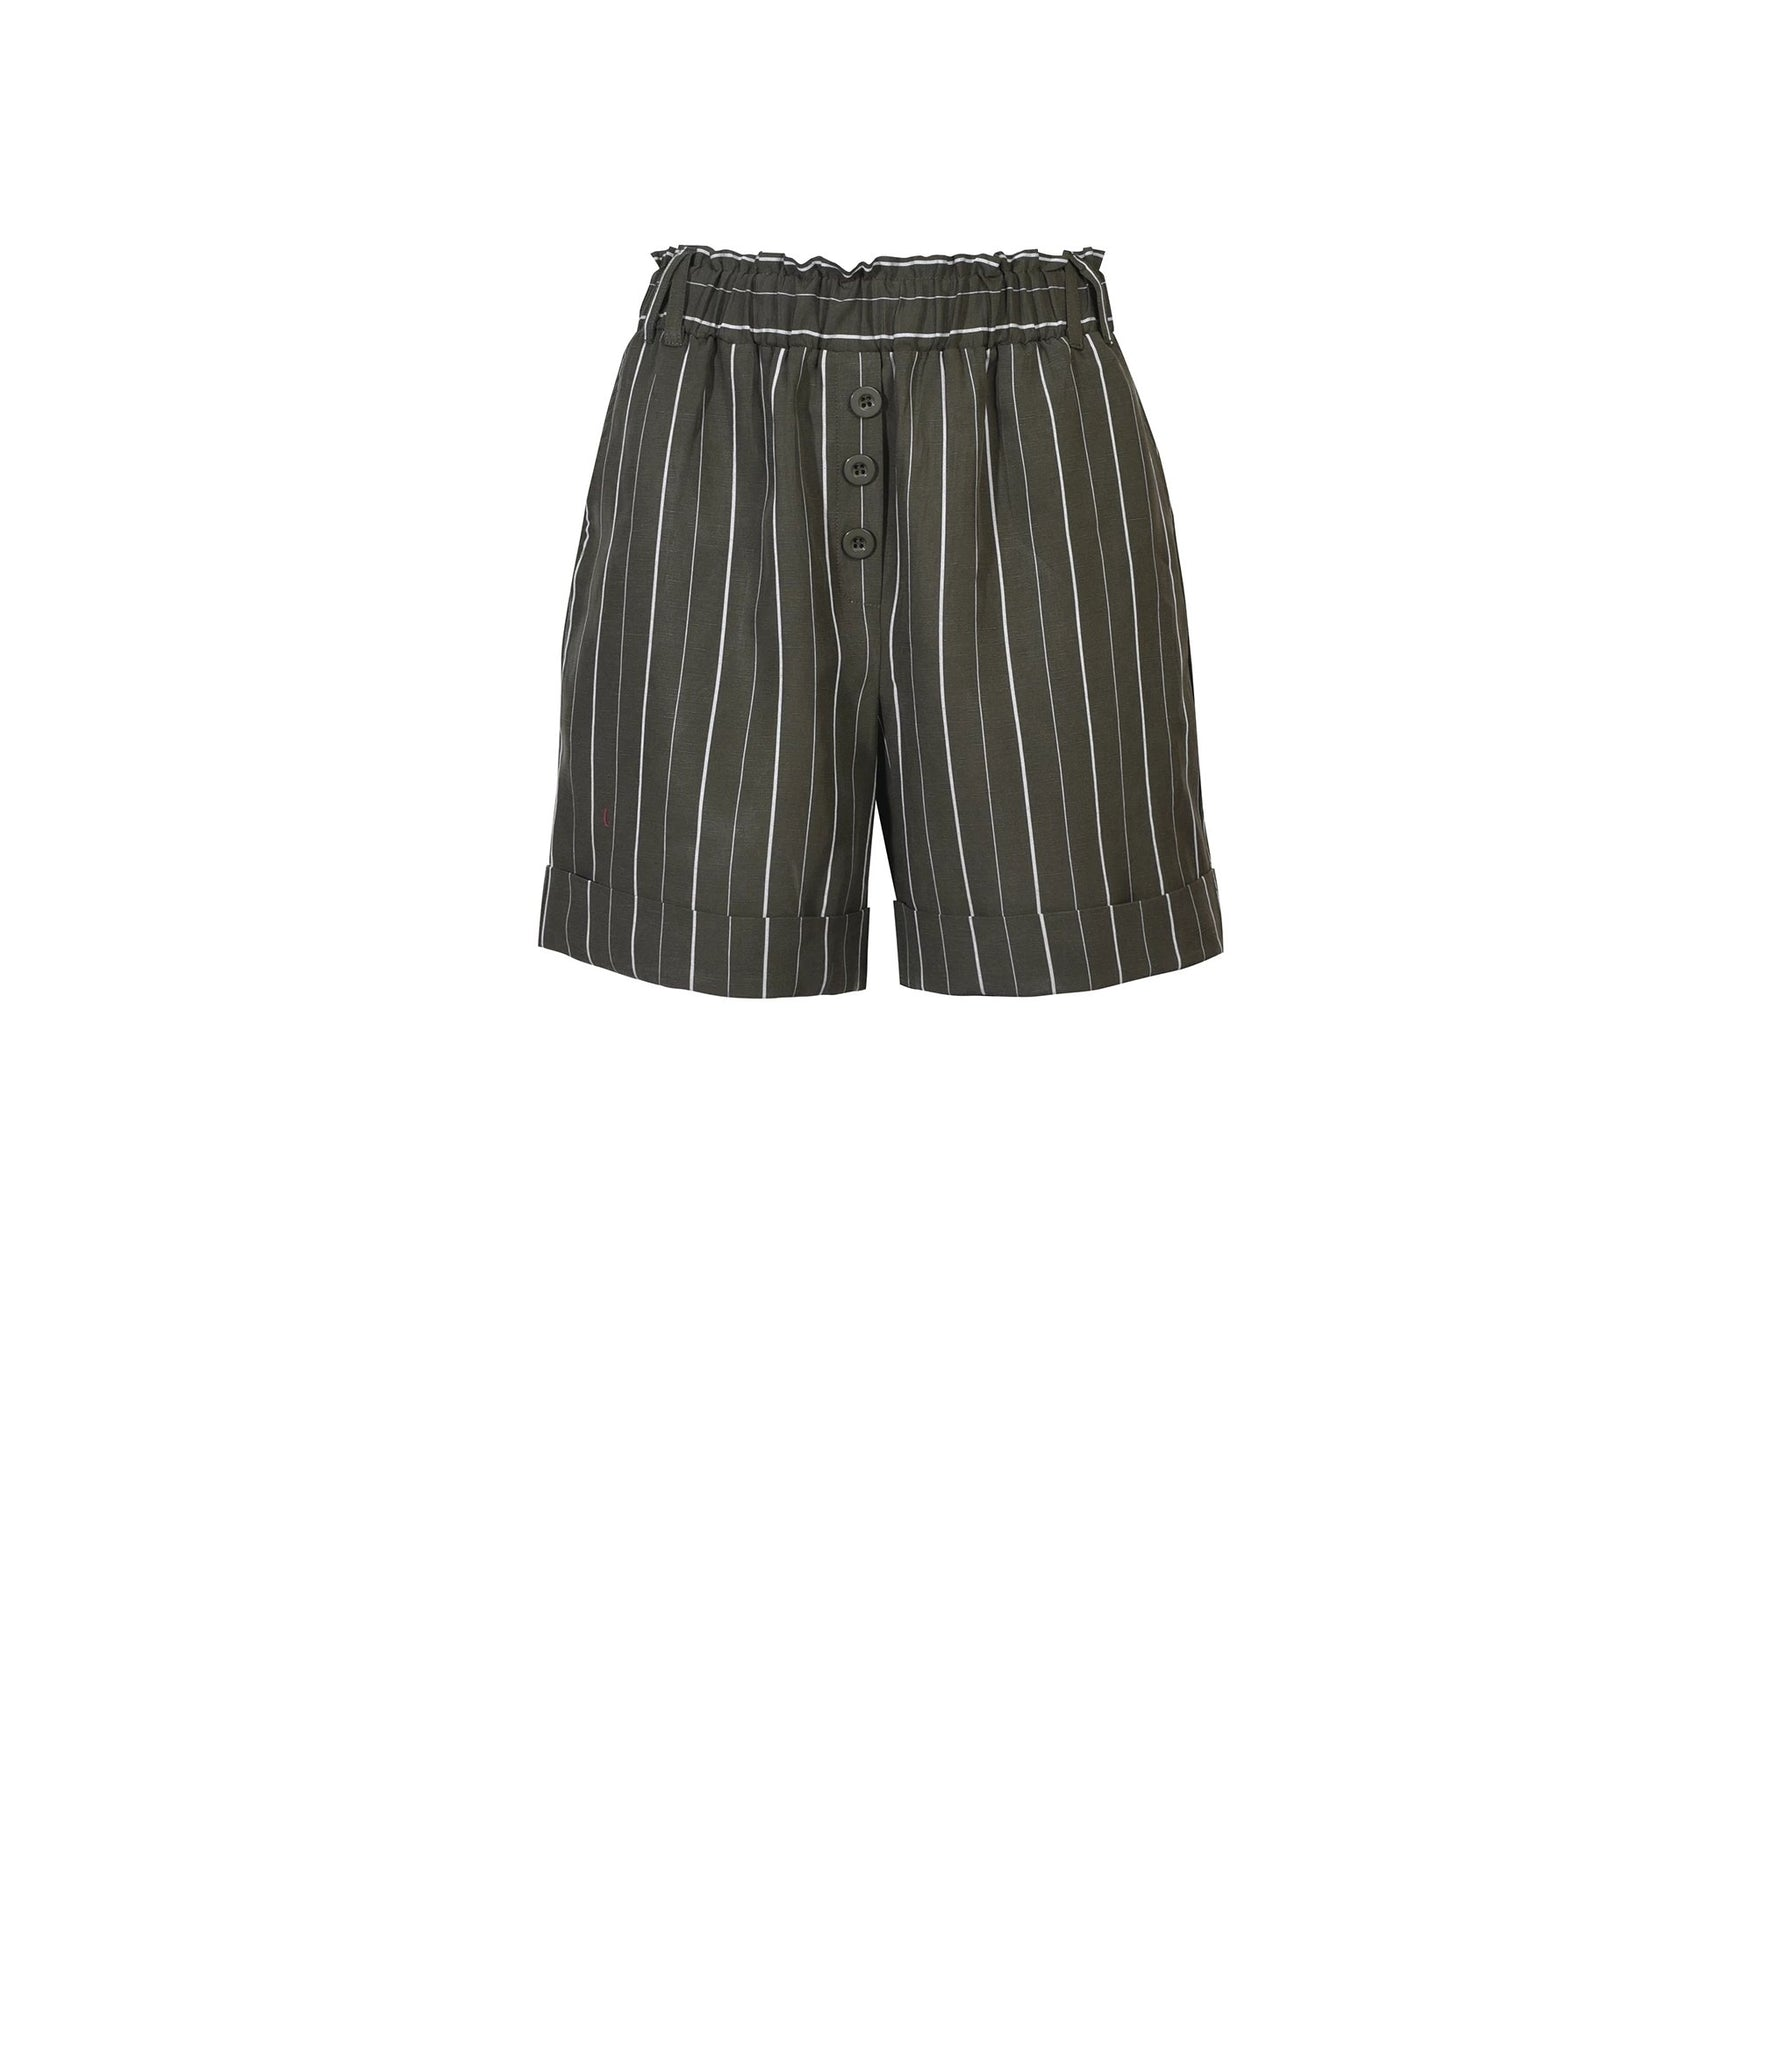 Gretta Short in Khaki Stripe